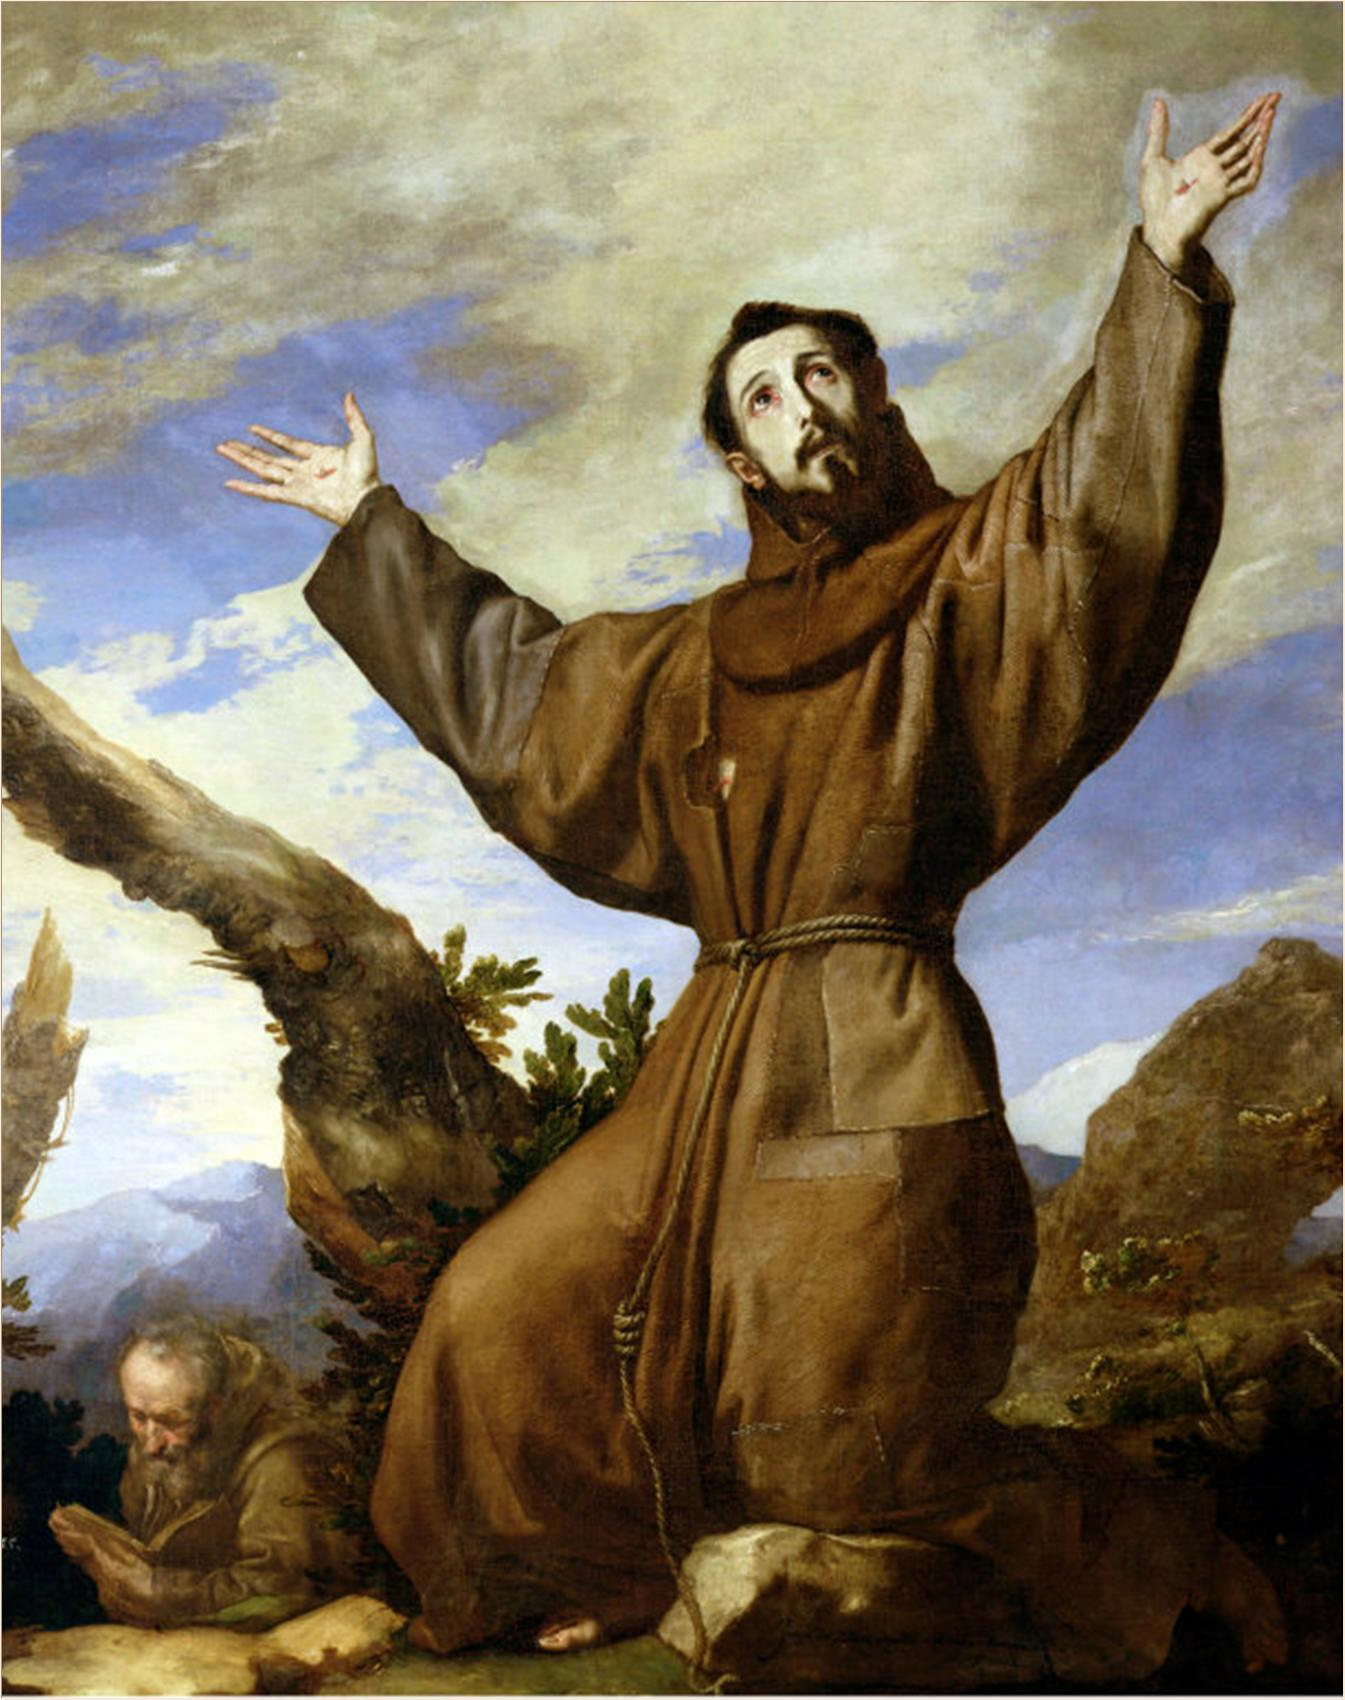 Saint Francis of Assisi in Ecstasy  by Jusepe de Ribera, (1639)